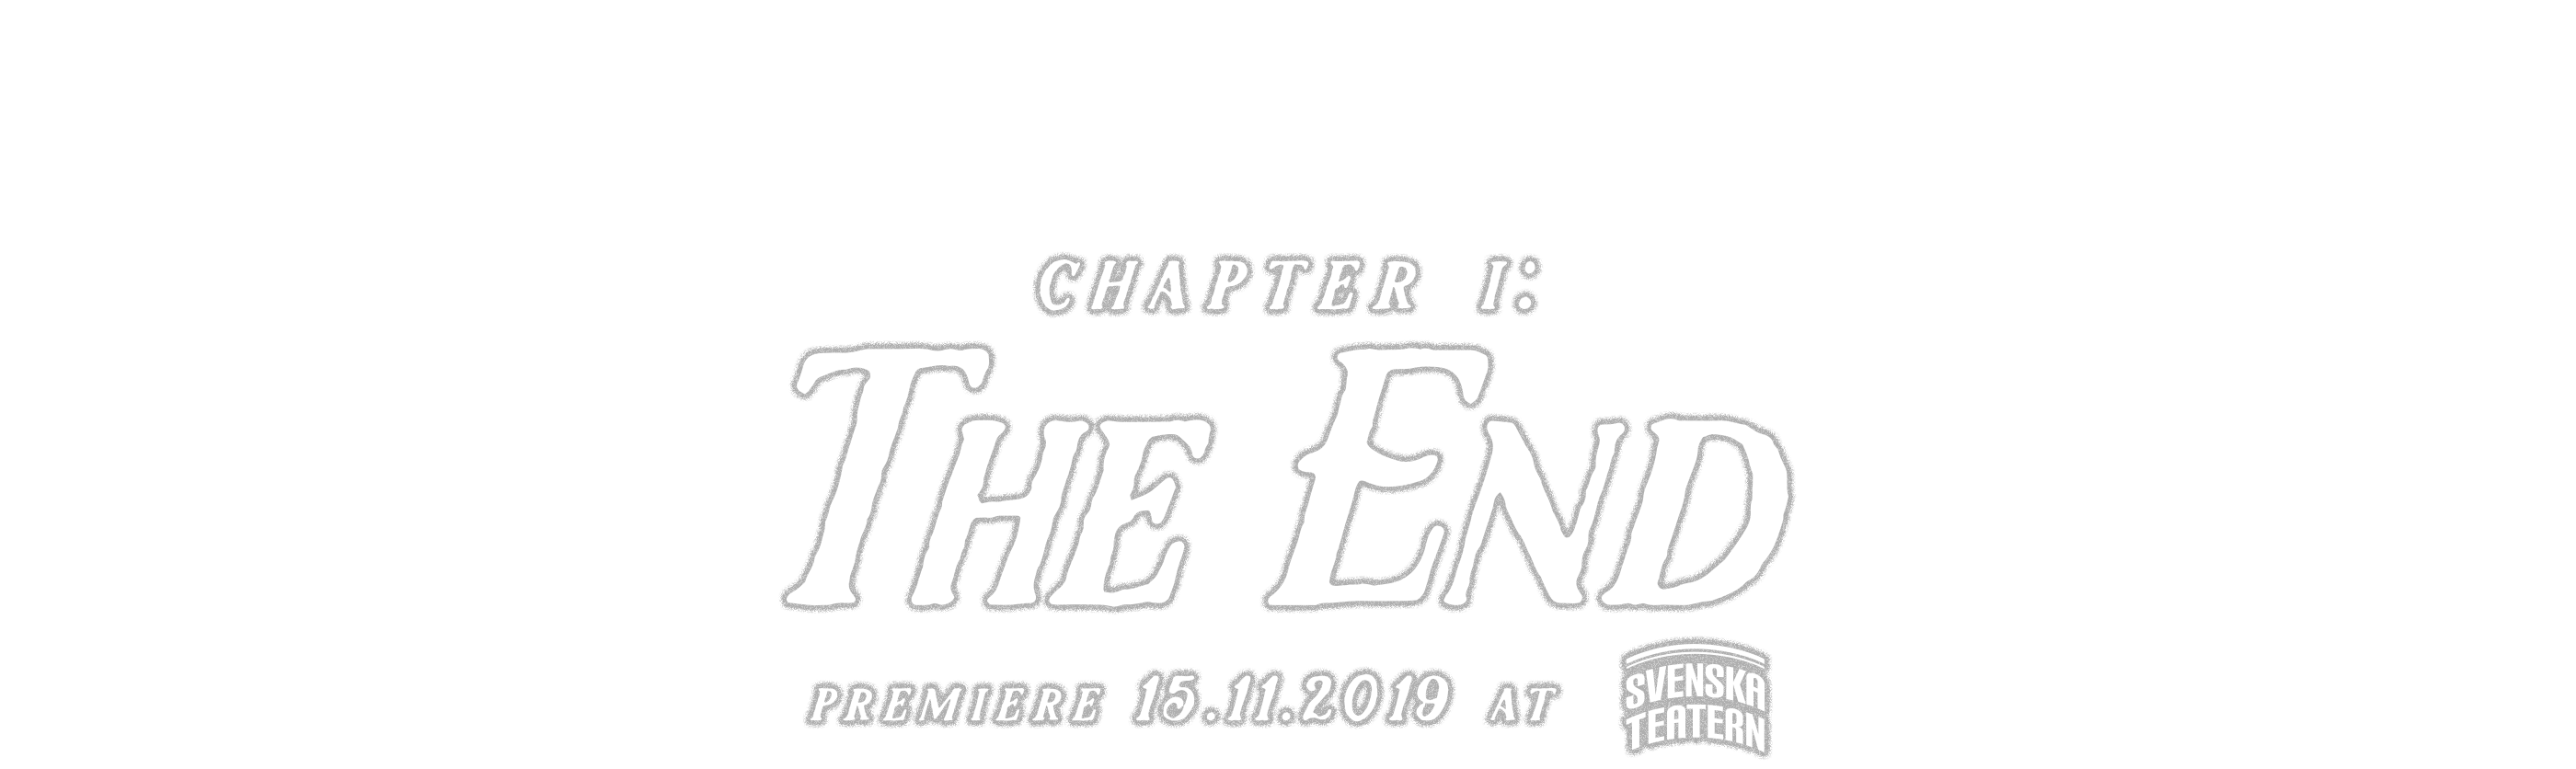 Chapter I: The End Premiere 15.11.2019 at Svenska Teatern